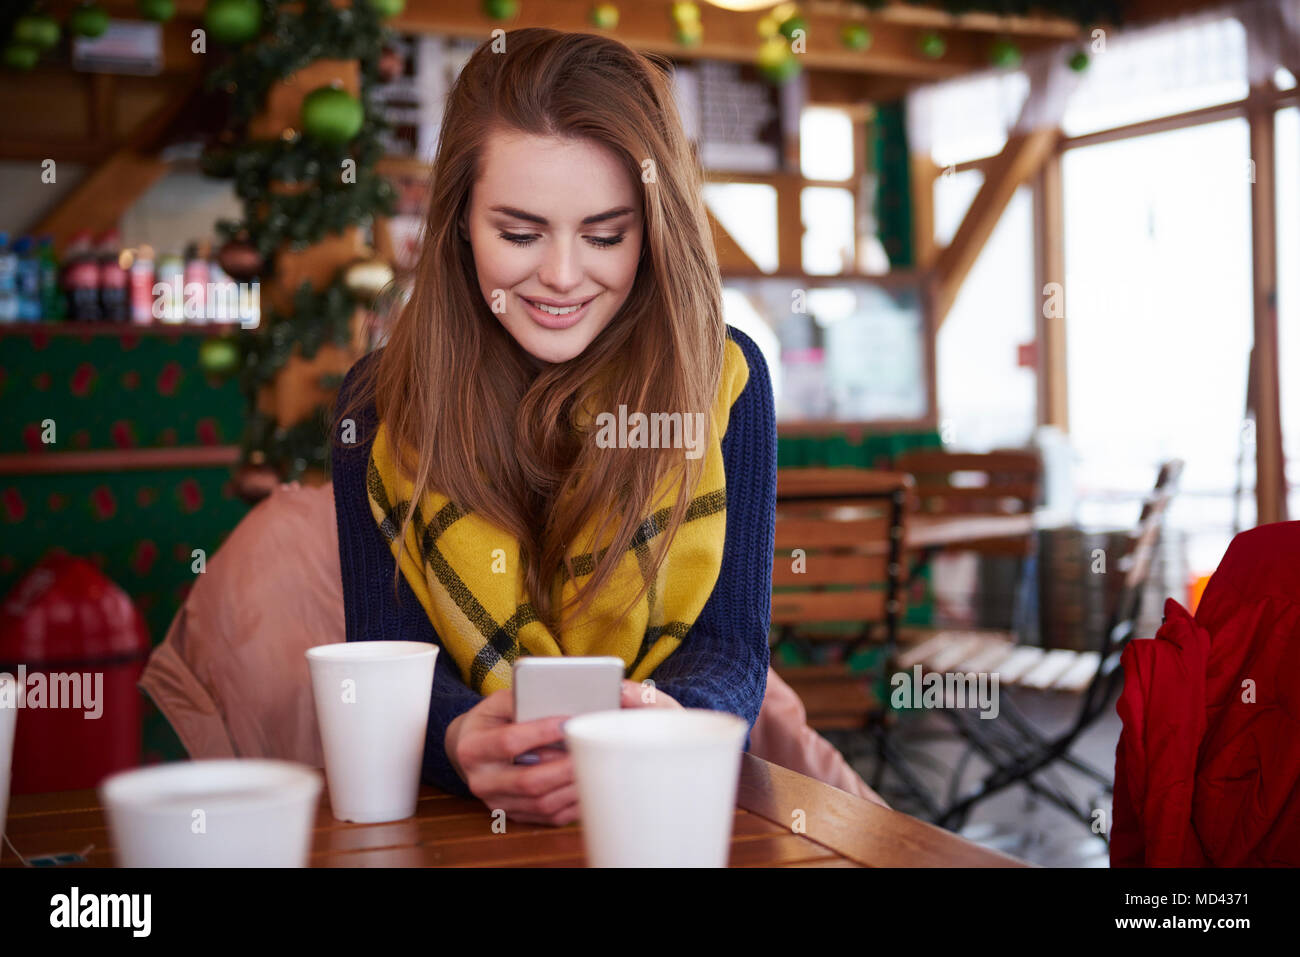 Young woman smiling over text message on mobile phone - Stock Image